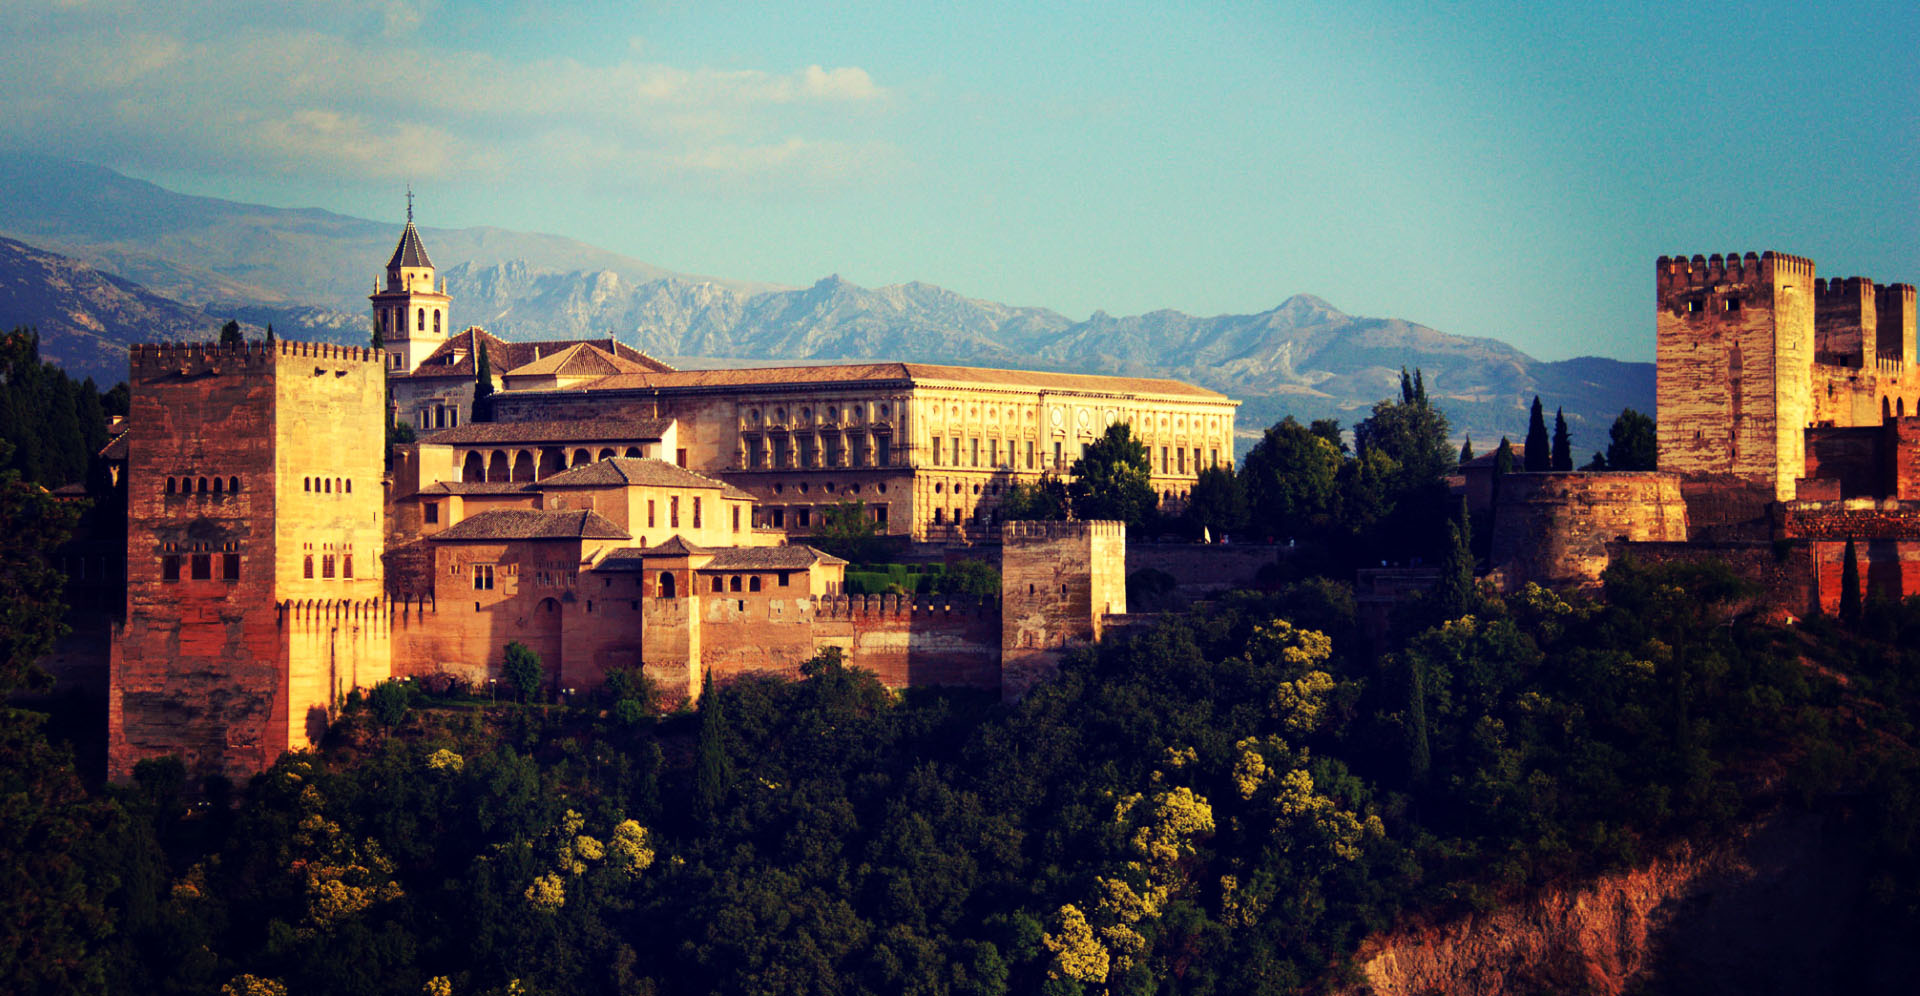 Alhambra_Granada_Palacios_Nazaries_Spain_03-Large